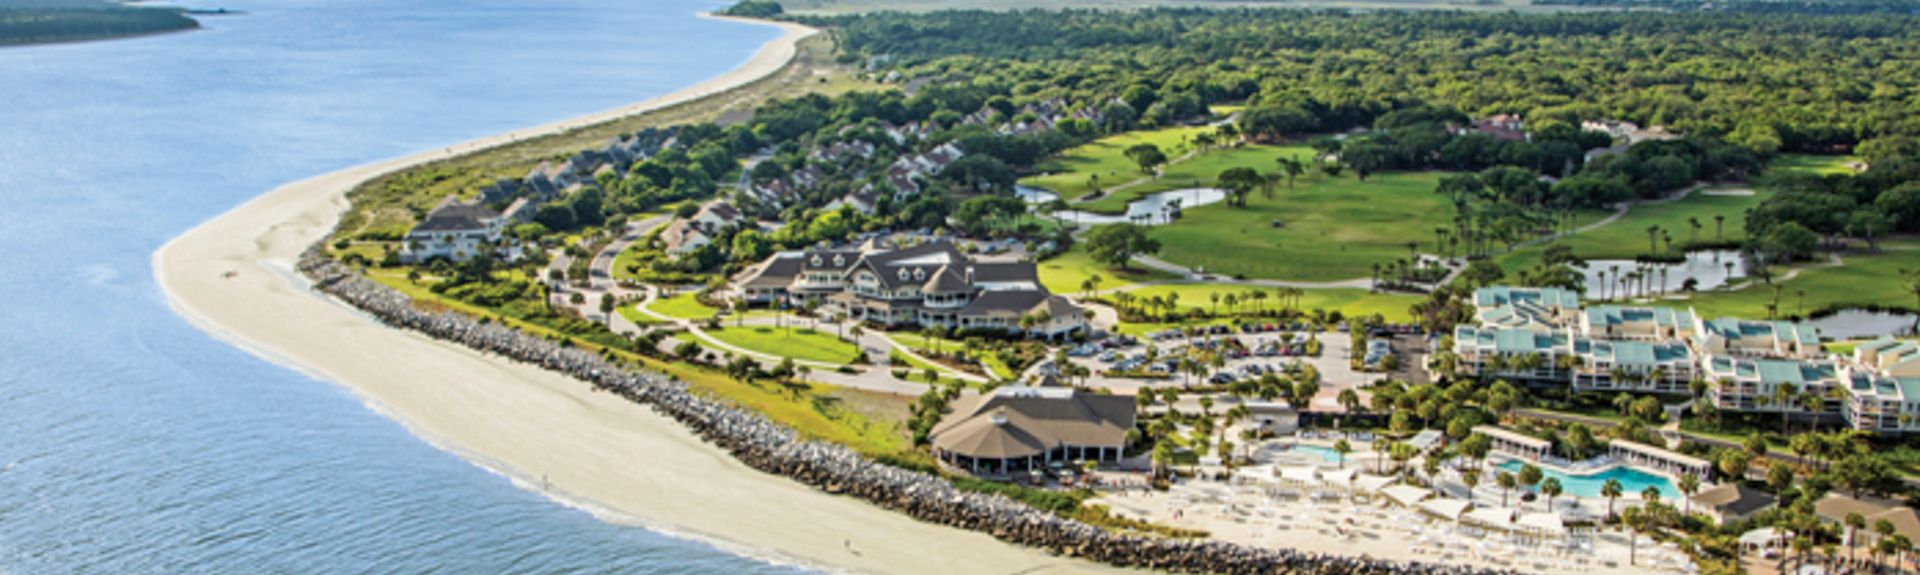 Spinnaker Beachhouses, Seabrook Island, South Carolina, United States of America